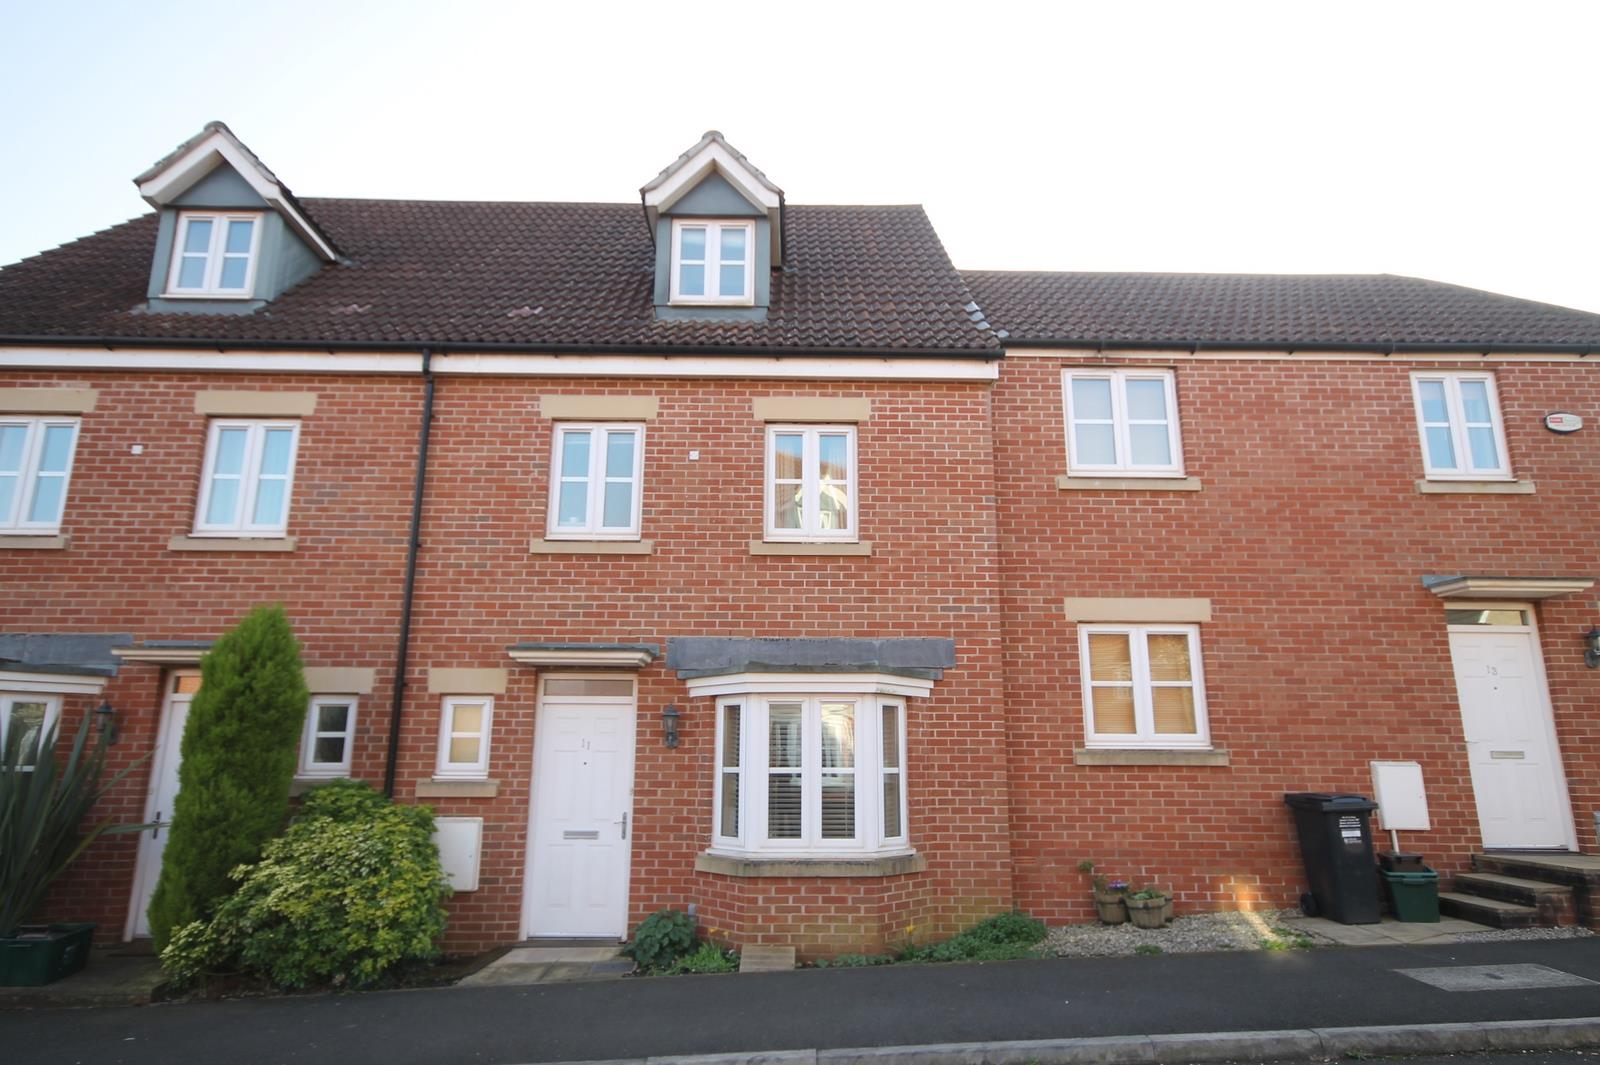 4 bed house to rent in Blackcurrant Drive, Bristol, BS41